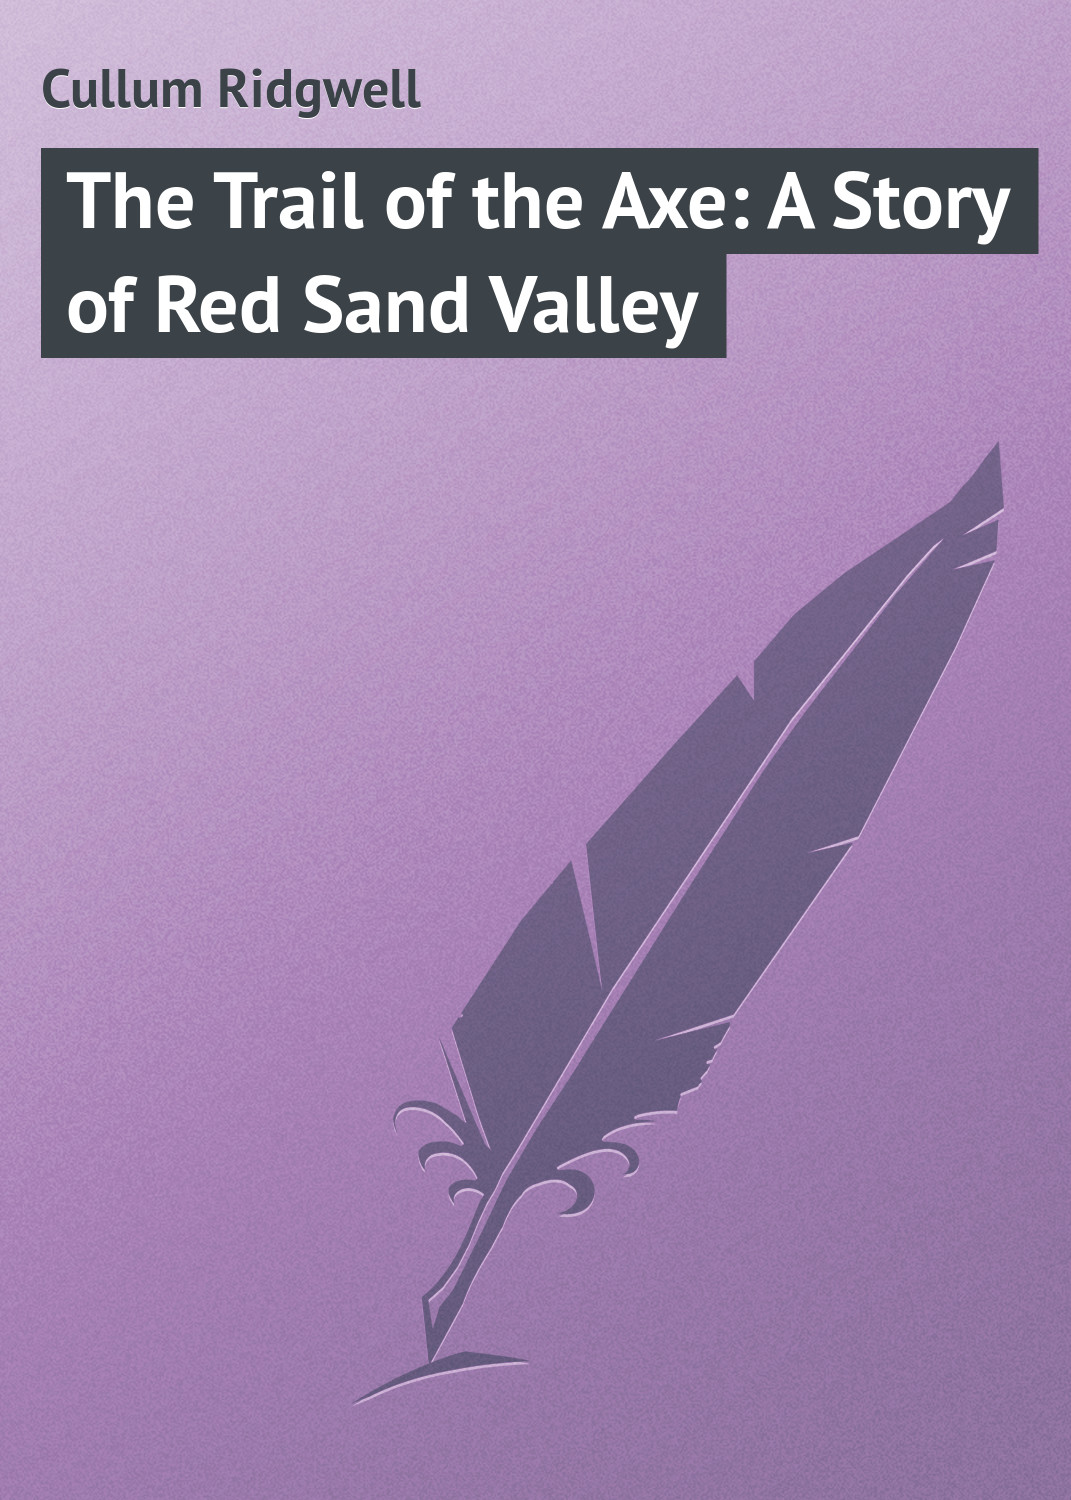 Cullum Ridgwell The Trail of the Axe: A Story of Red Sand Valley sulphated galactans of red seaweeds